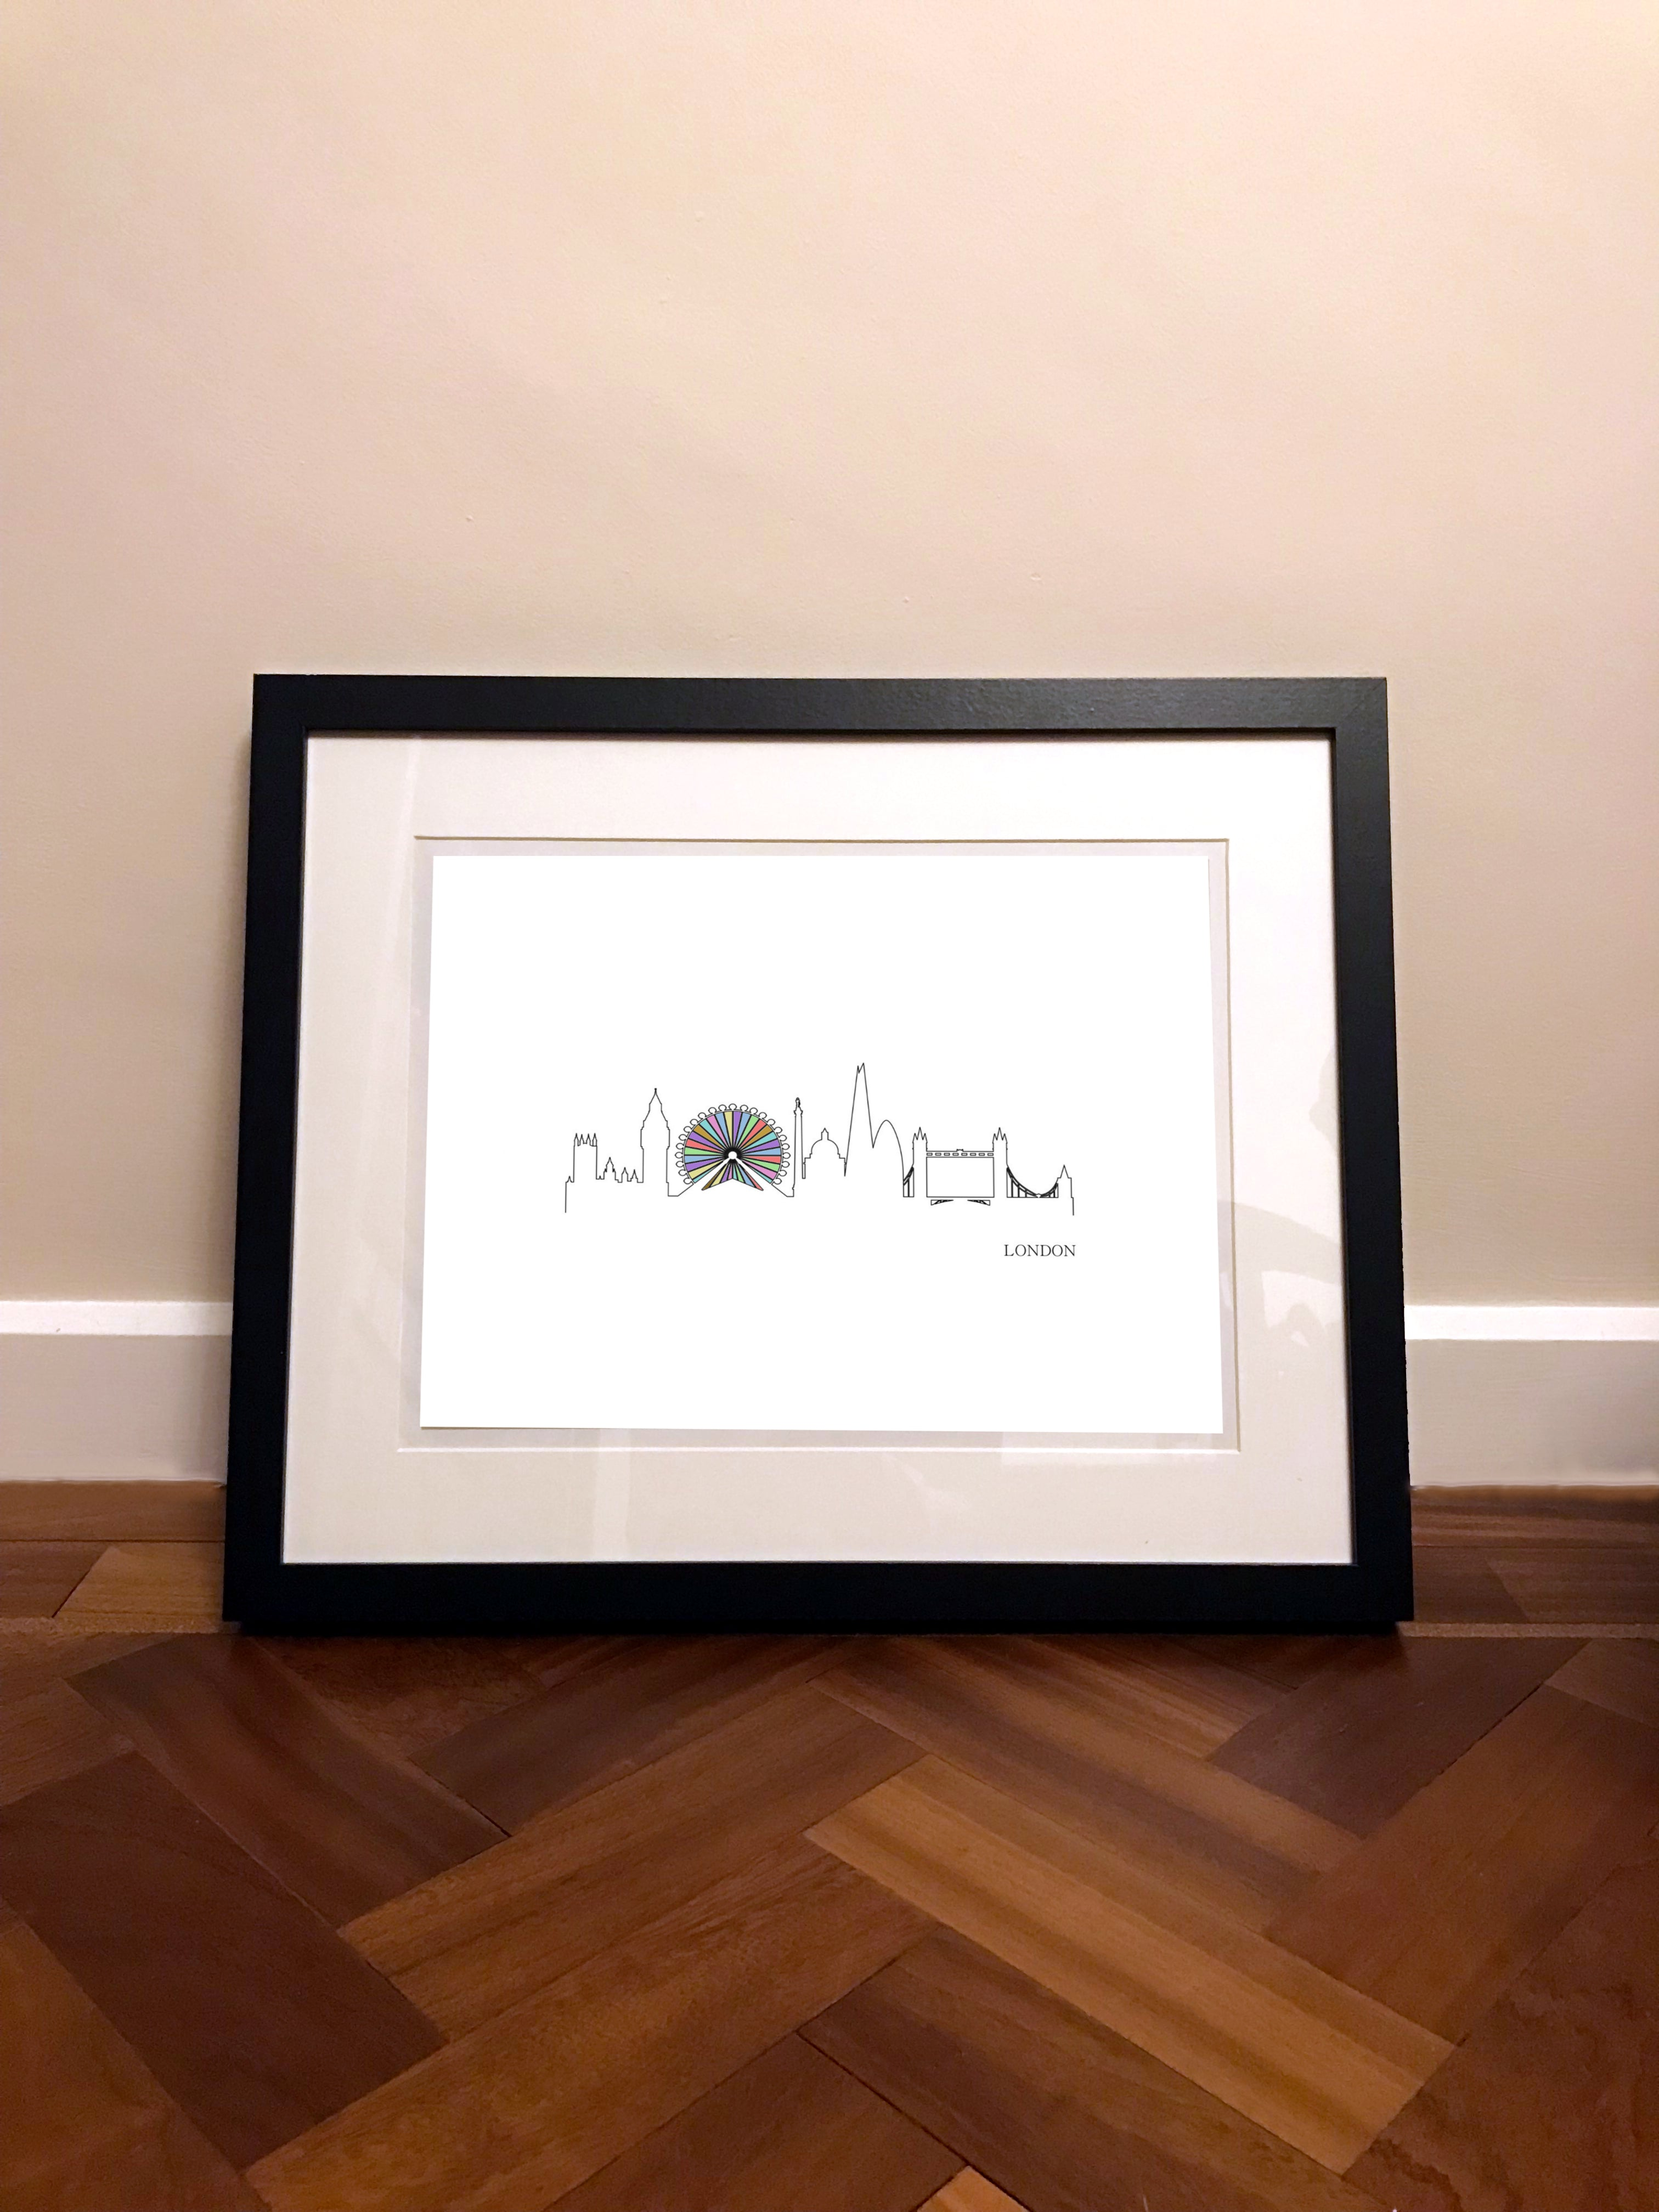 A3 / A2 Printed Poster London Skyline - Cutting Image